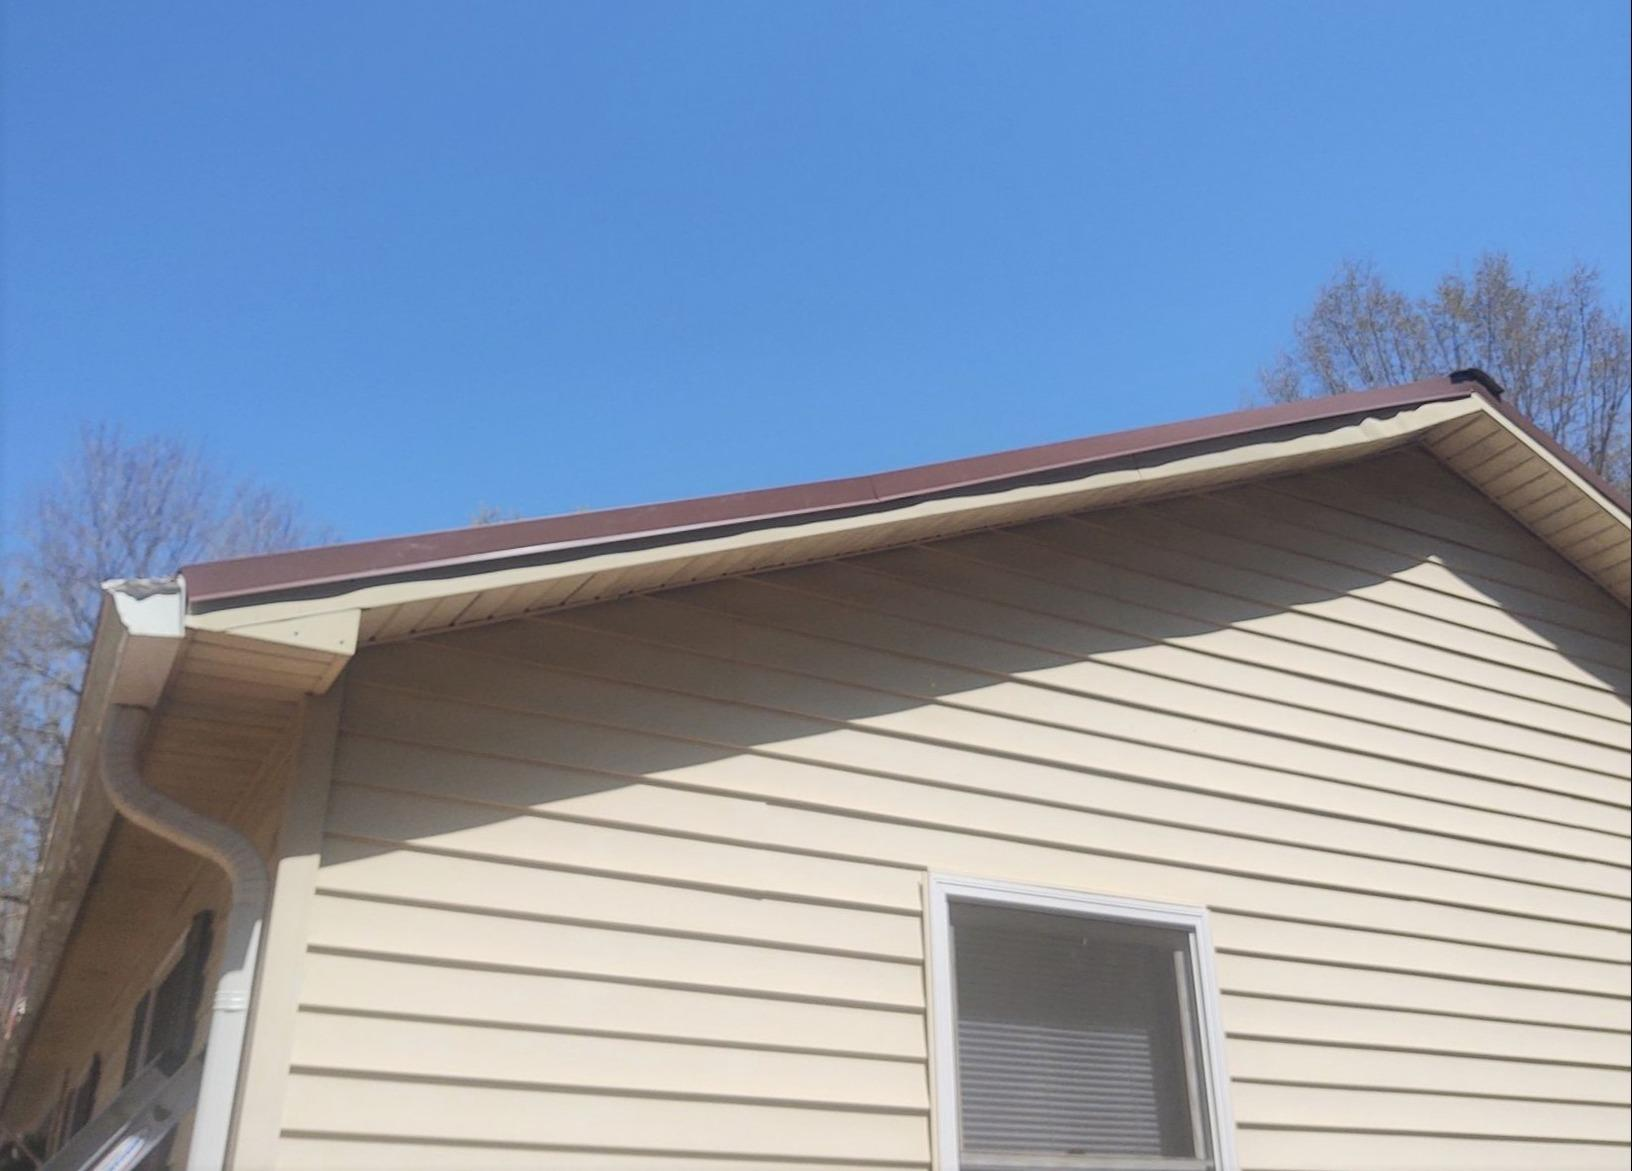 Emergency Repair on Storm Damaged Roof in Reidsville, NC - After Photo